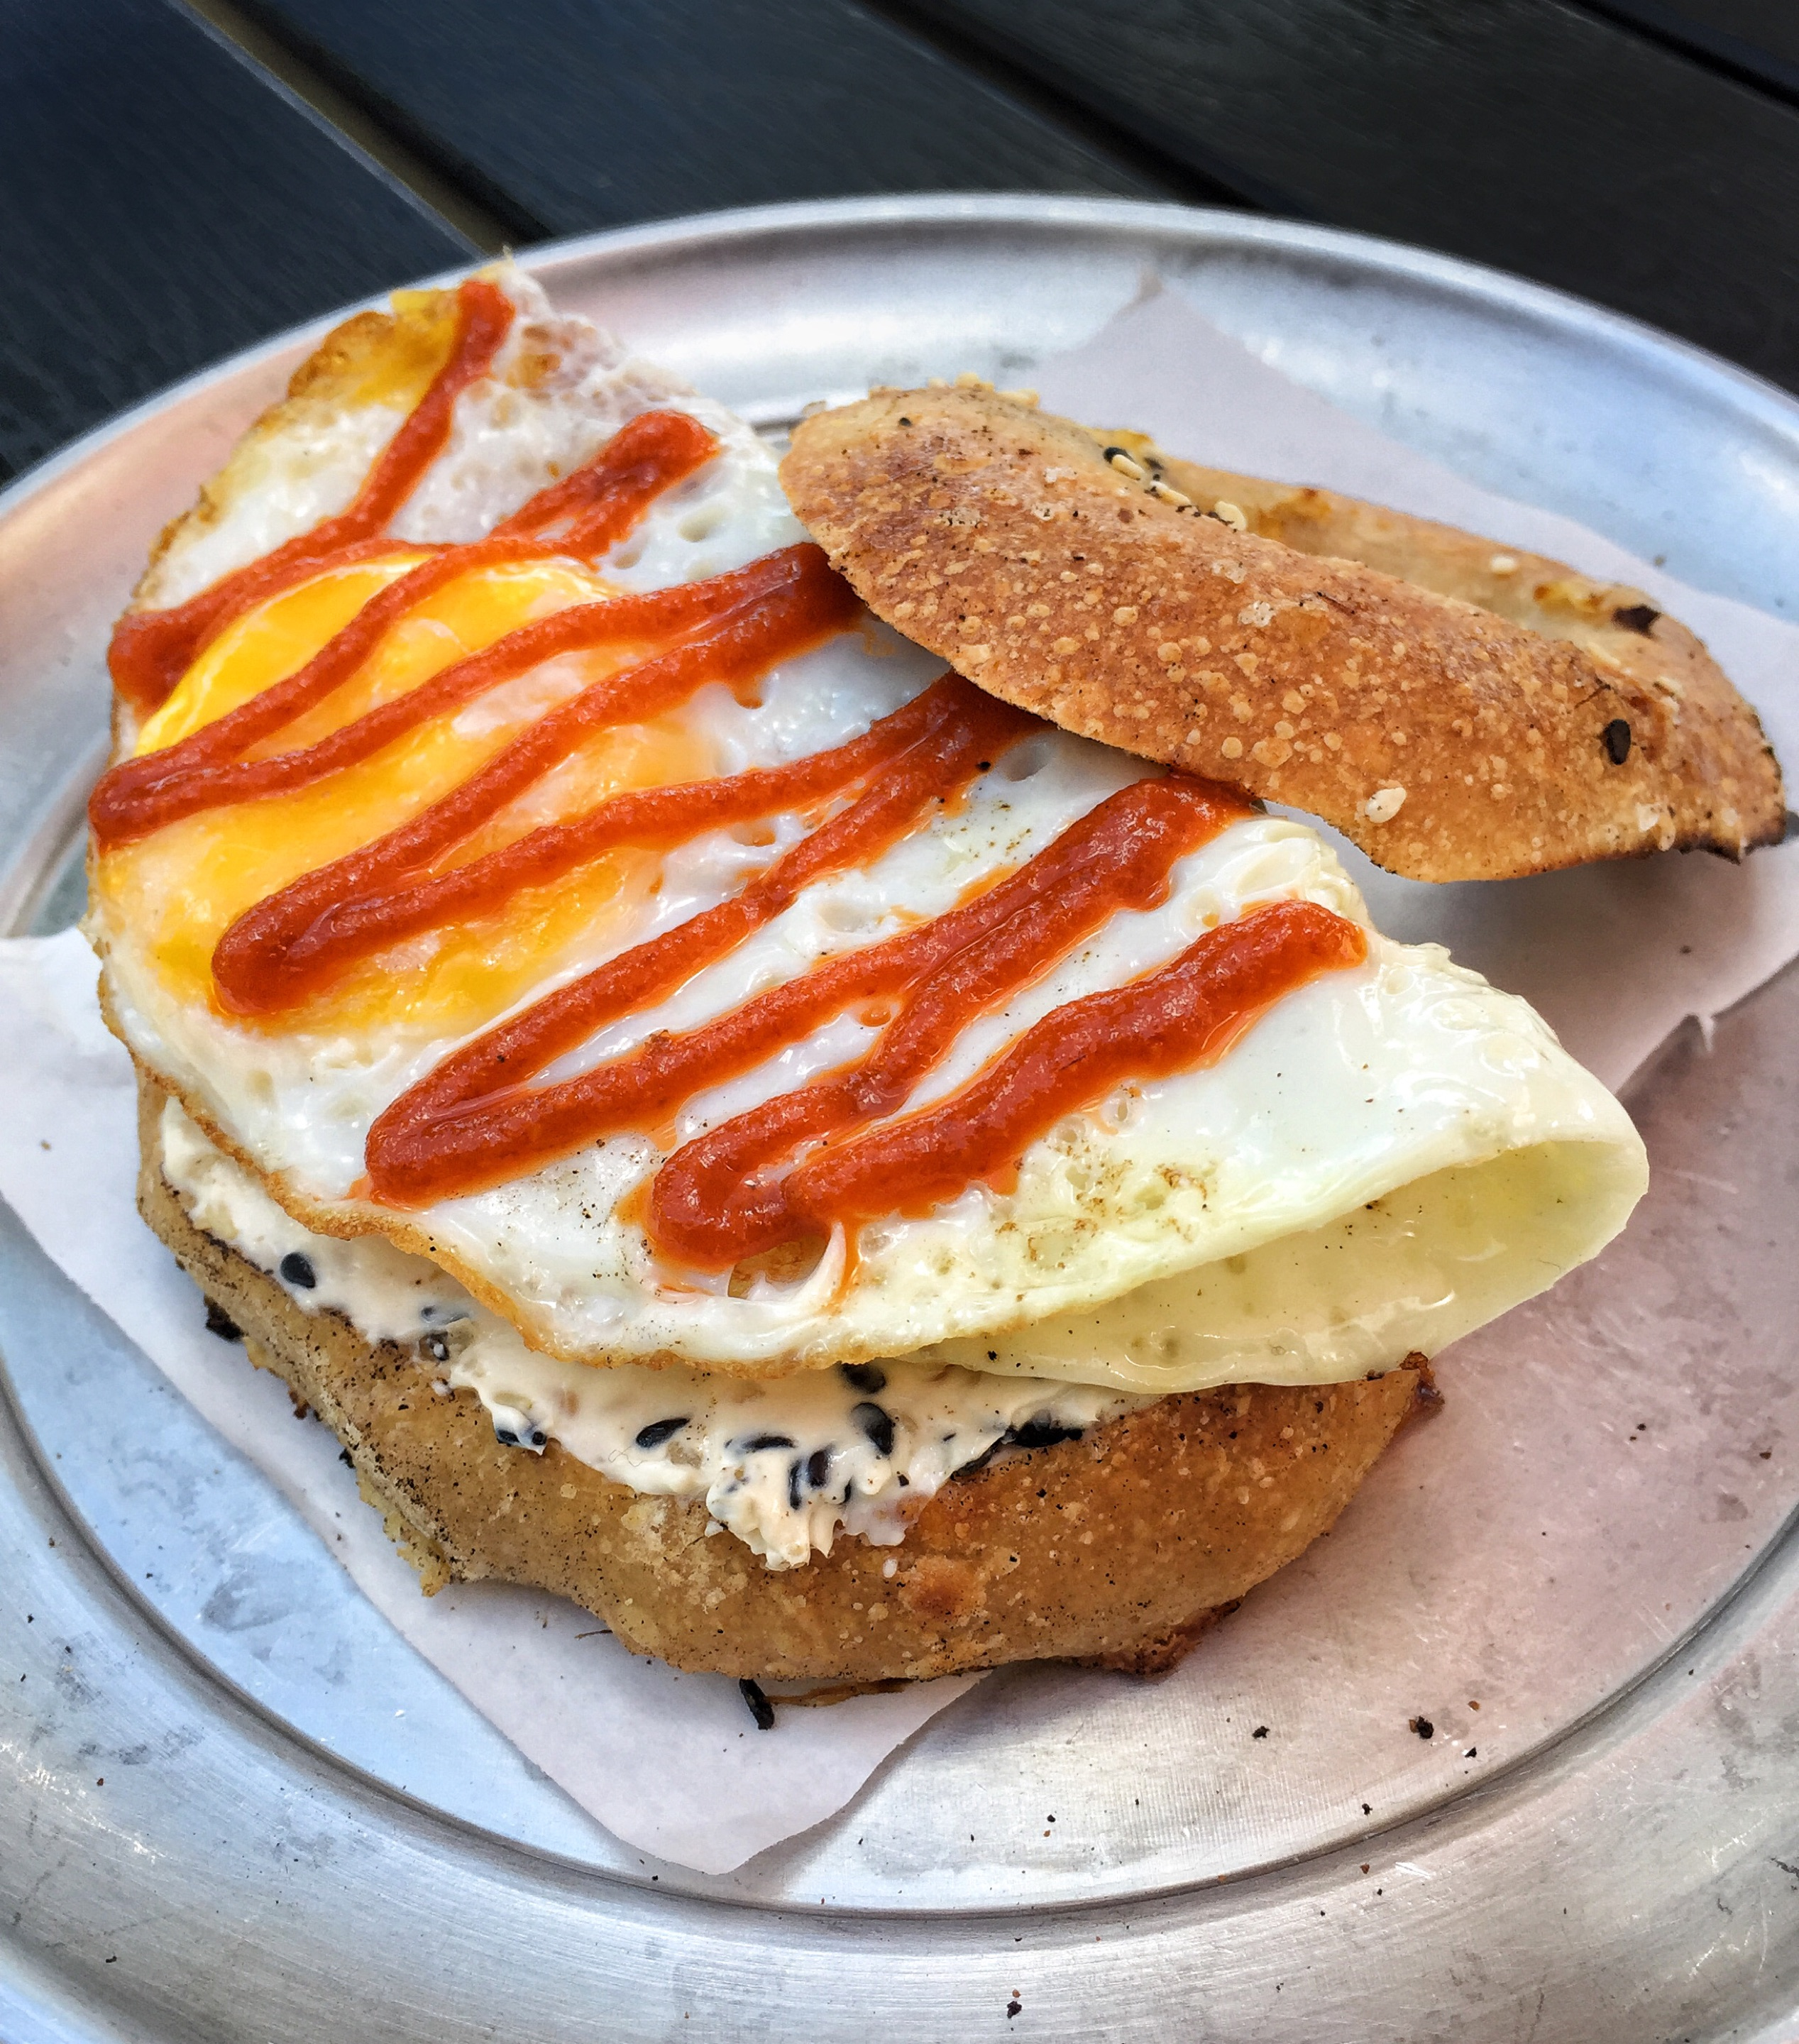 Bialy (The Whole She Bang, $6)